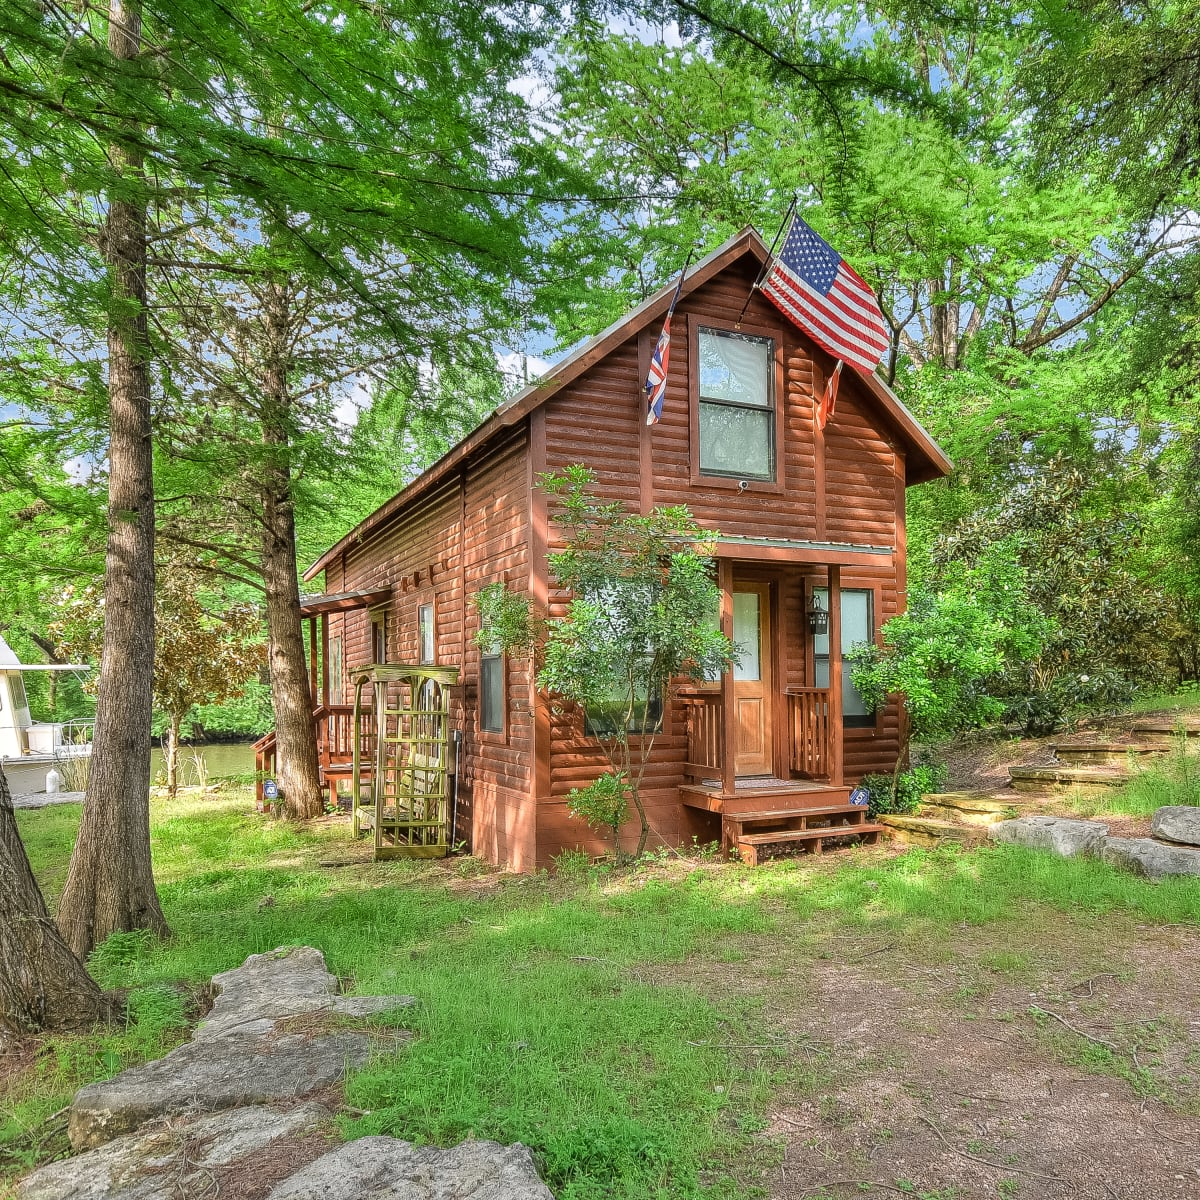 Austin house_7400 Coldwater Canyon